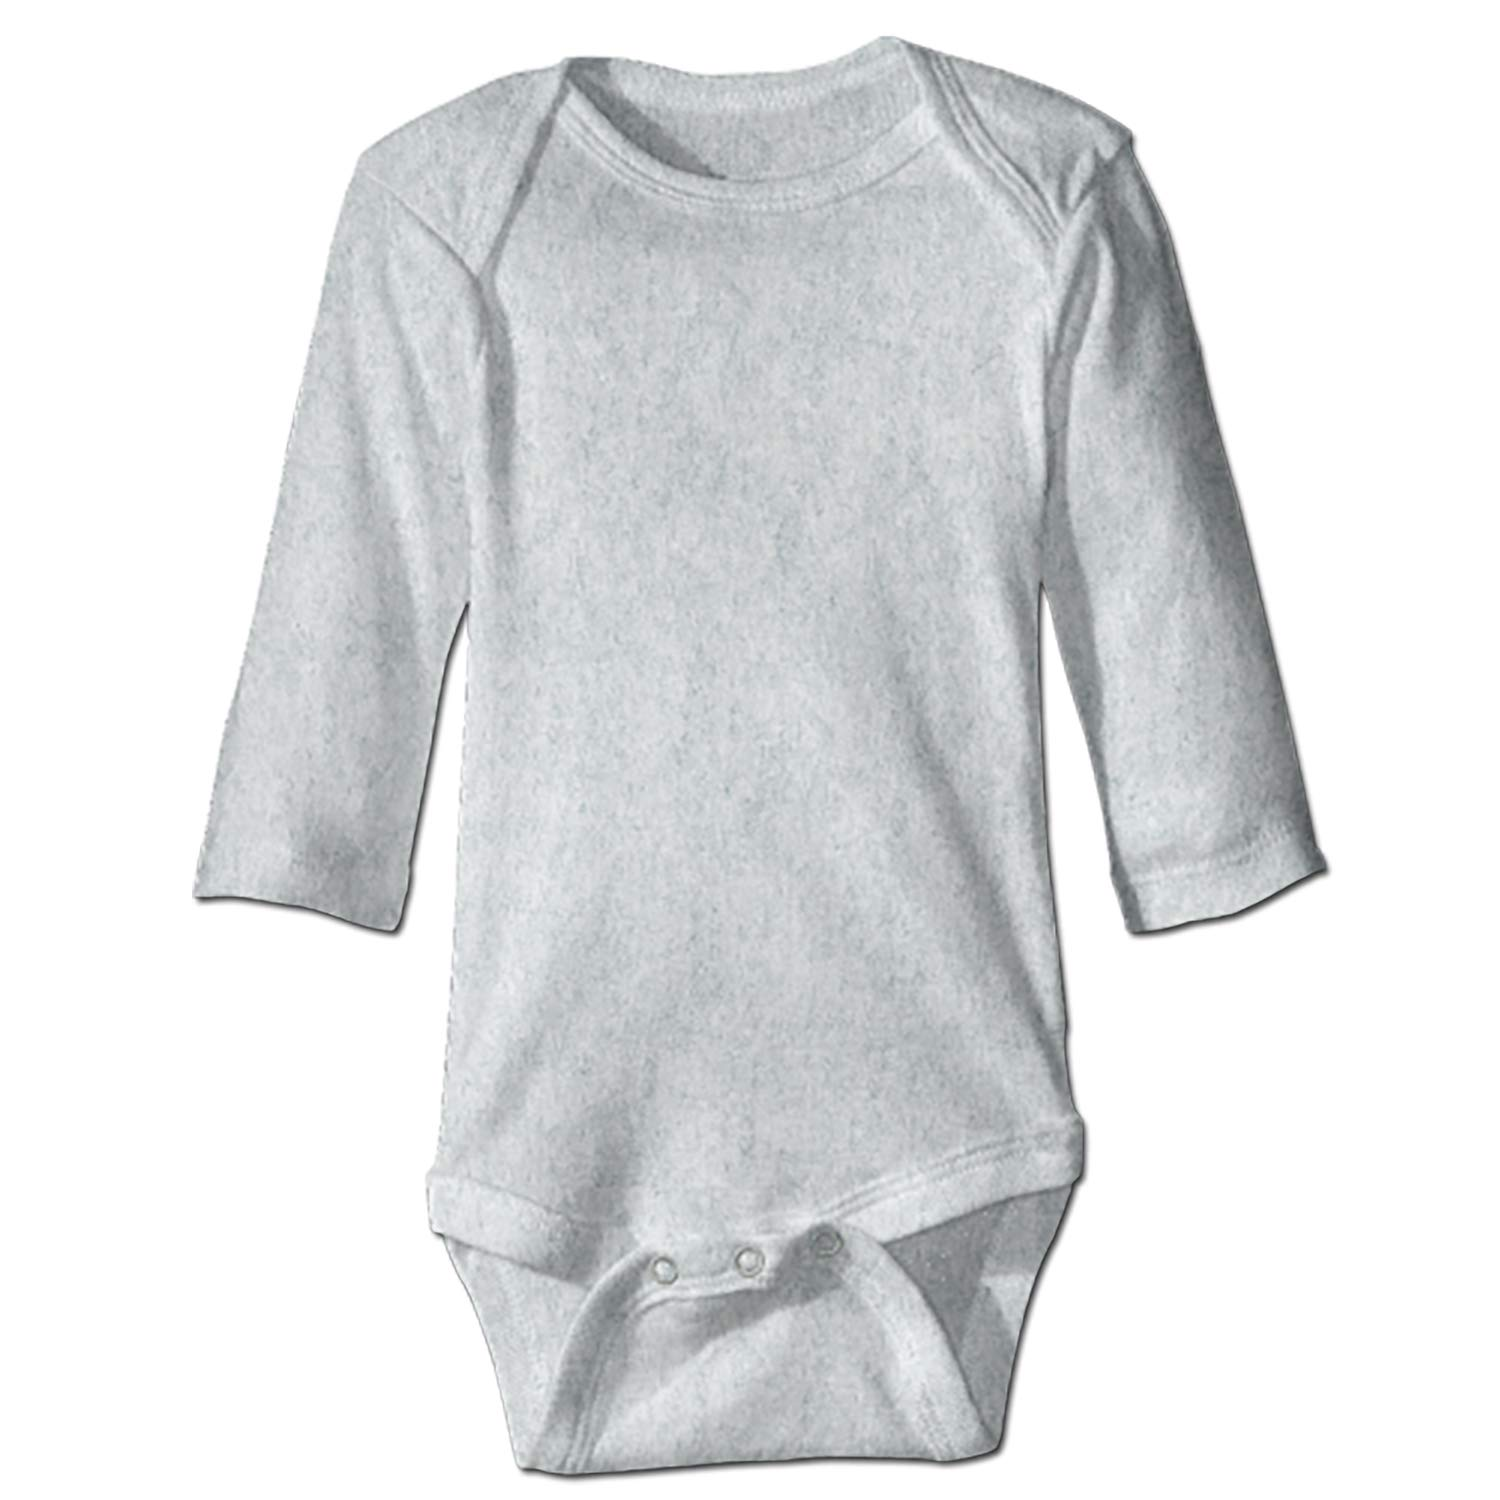 UNIQUES Onesies Long Sleeve Home Outfit for Baby Boys Girls